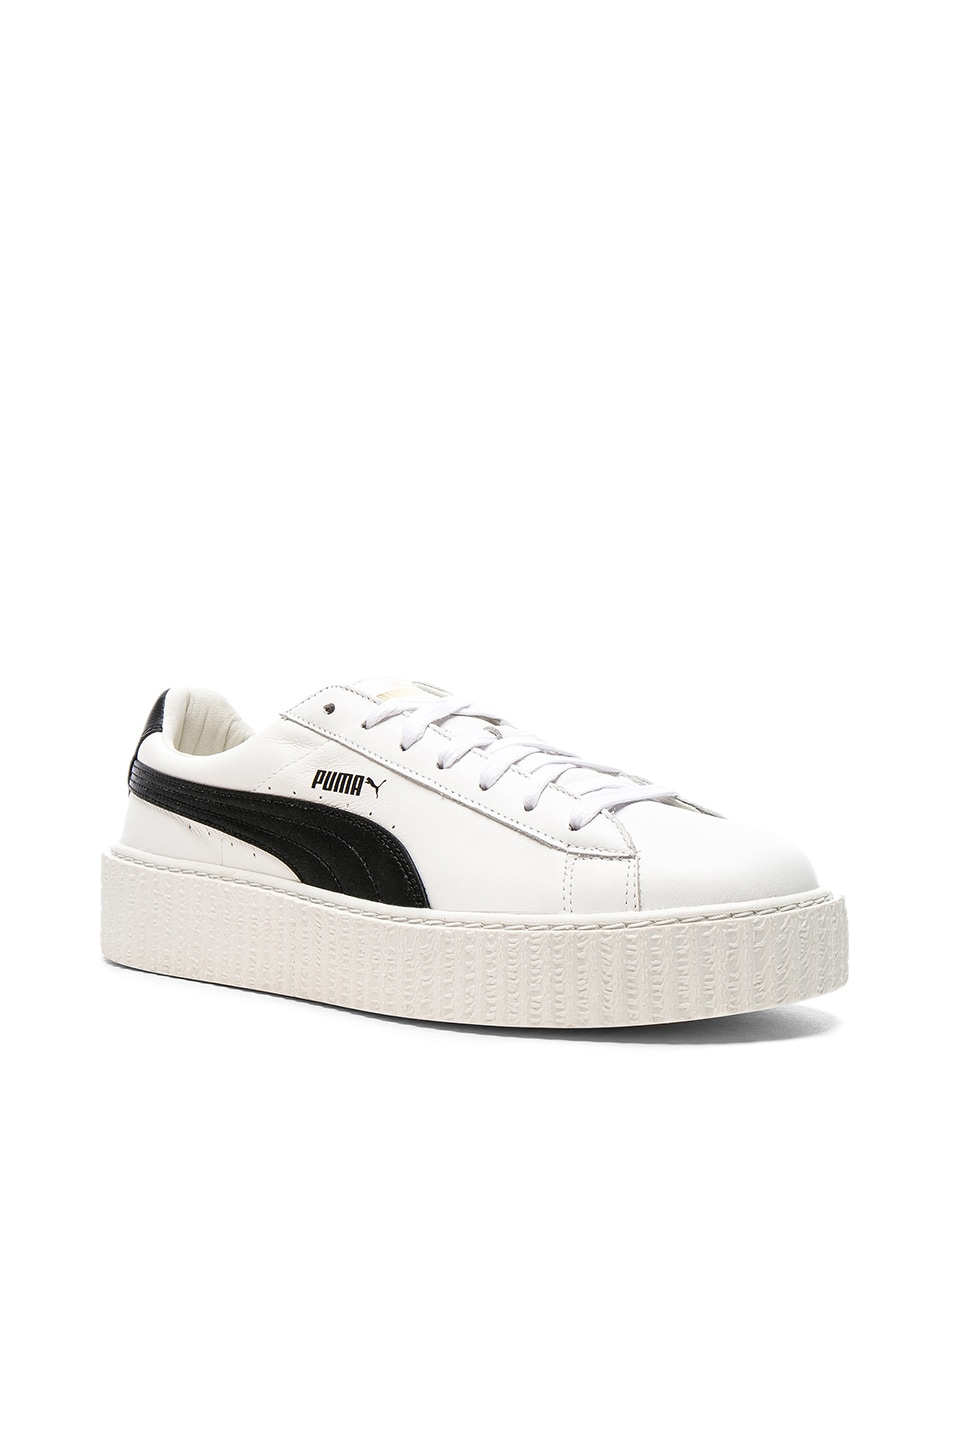 sports shoes 21a52 2c3b8 Fenty by Puma Cracked Leather Creepers in Black & White ...